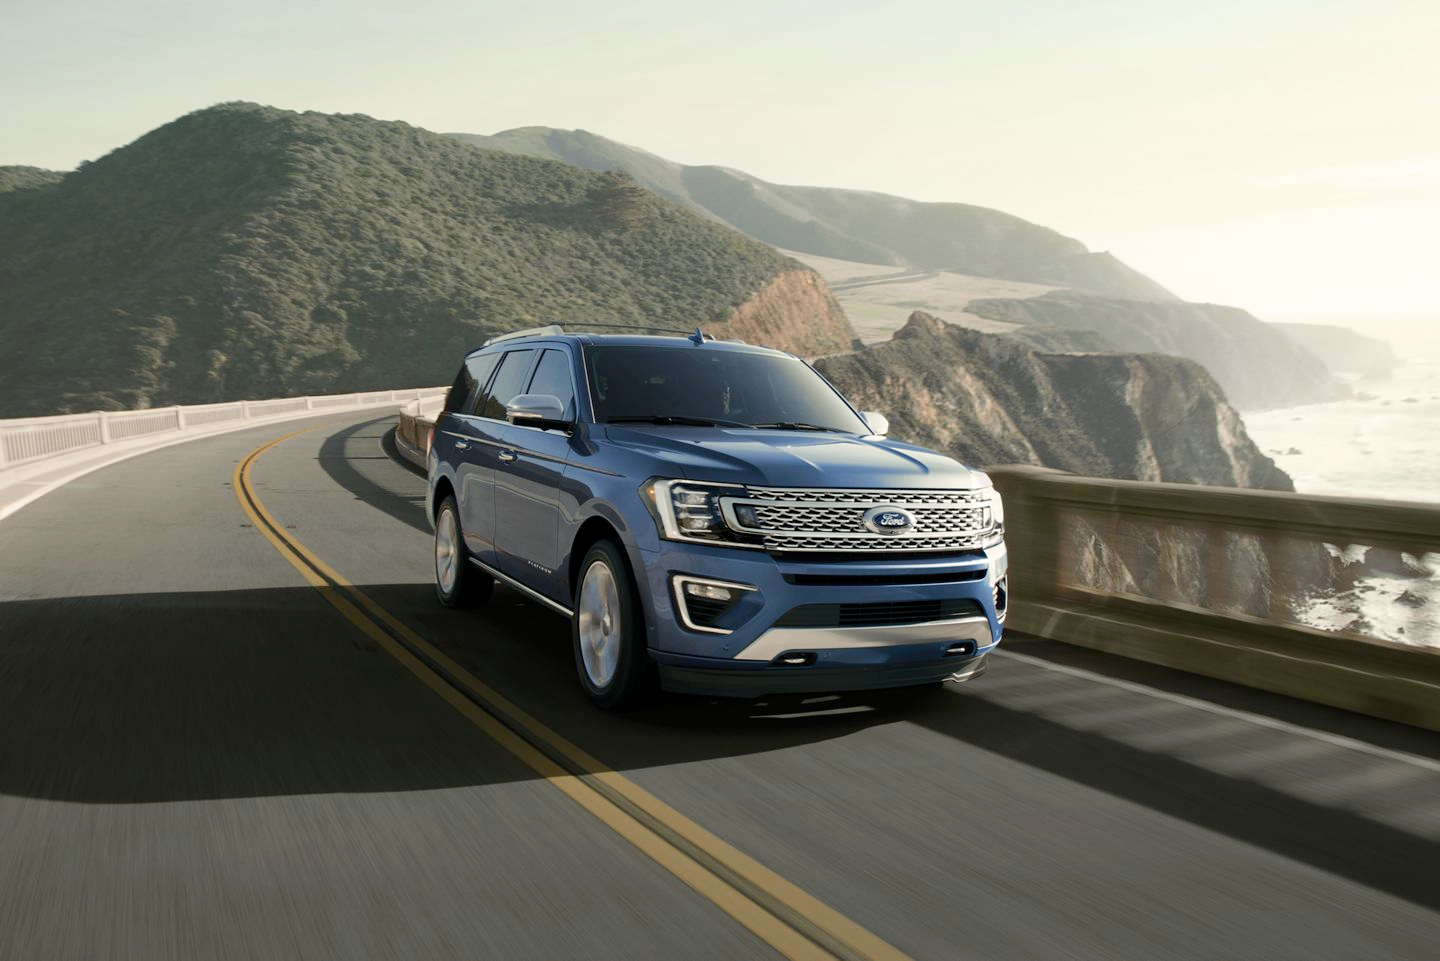 2020 Ford Expedition - Exterior